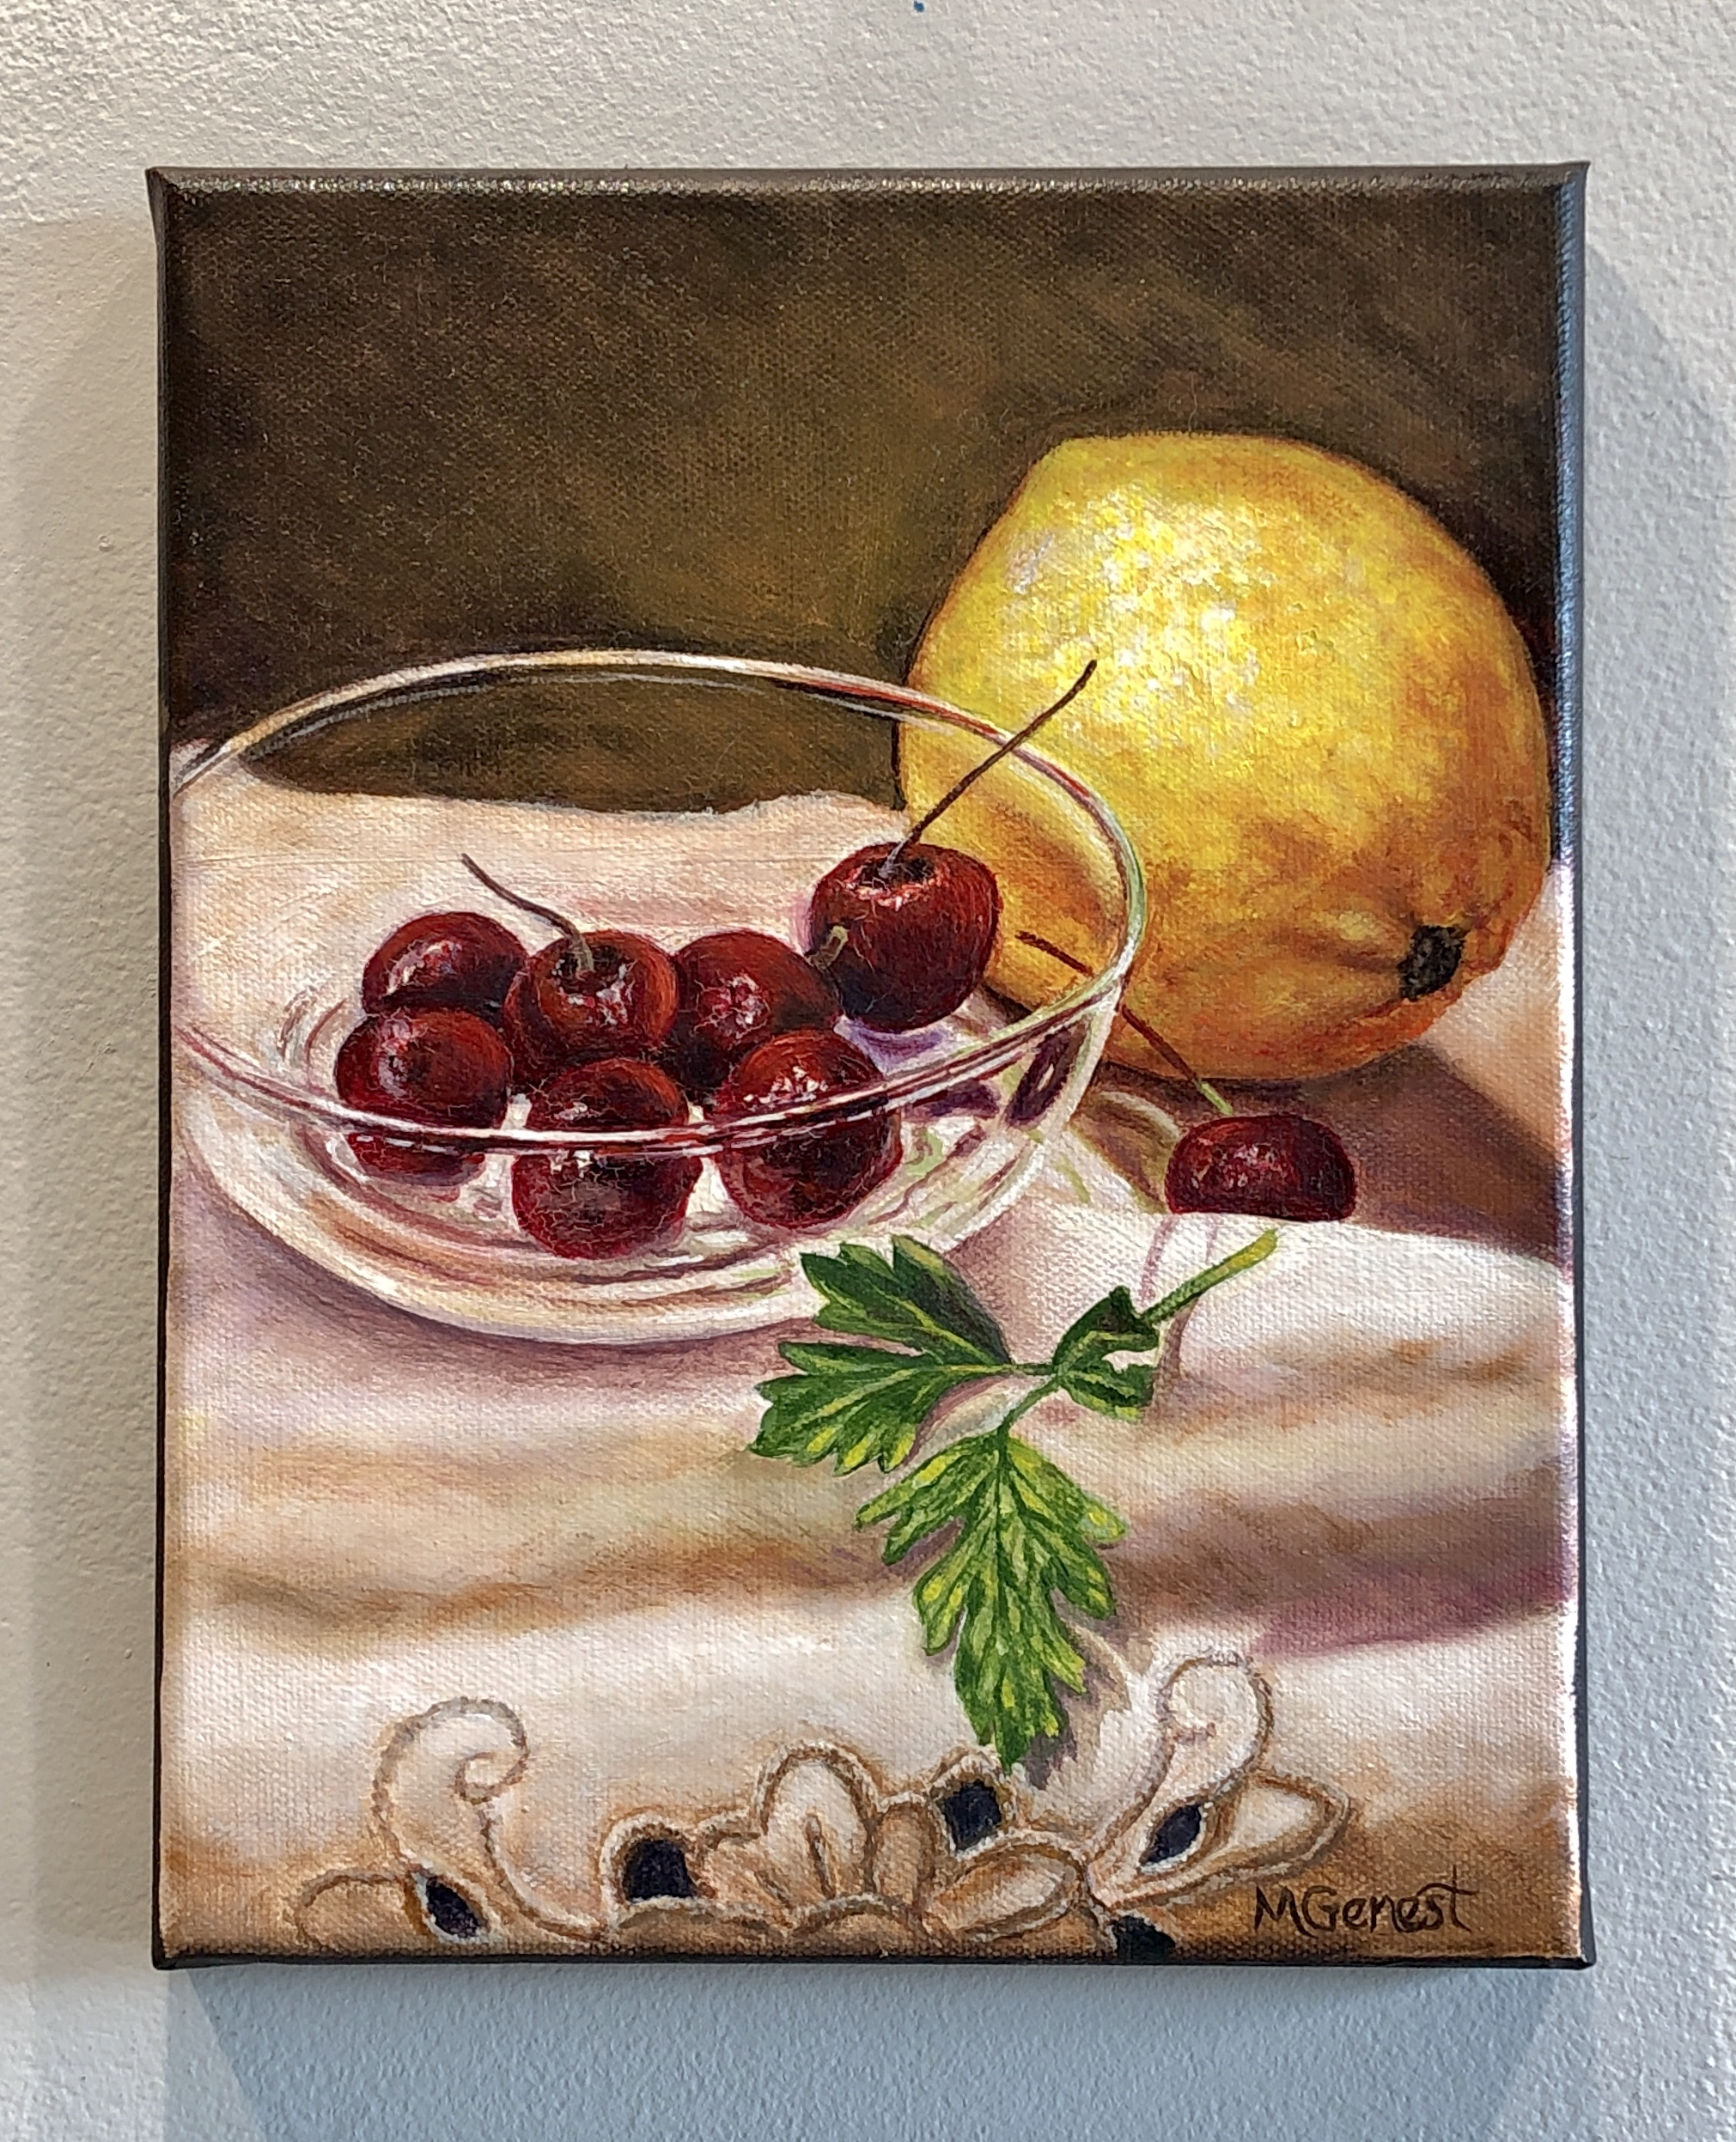 Marguerite Genest - Lemons Cherries